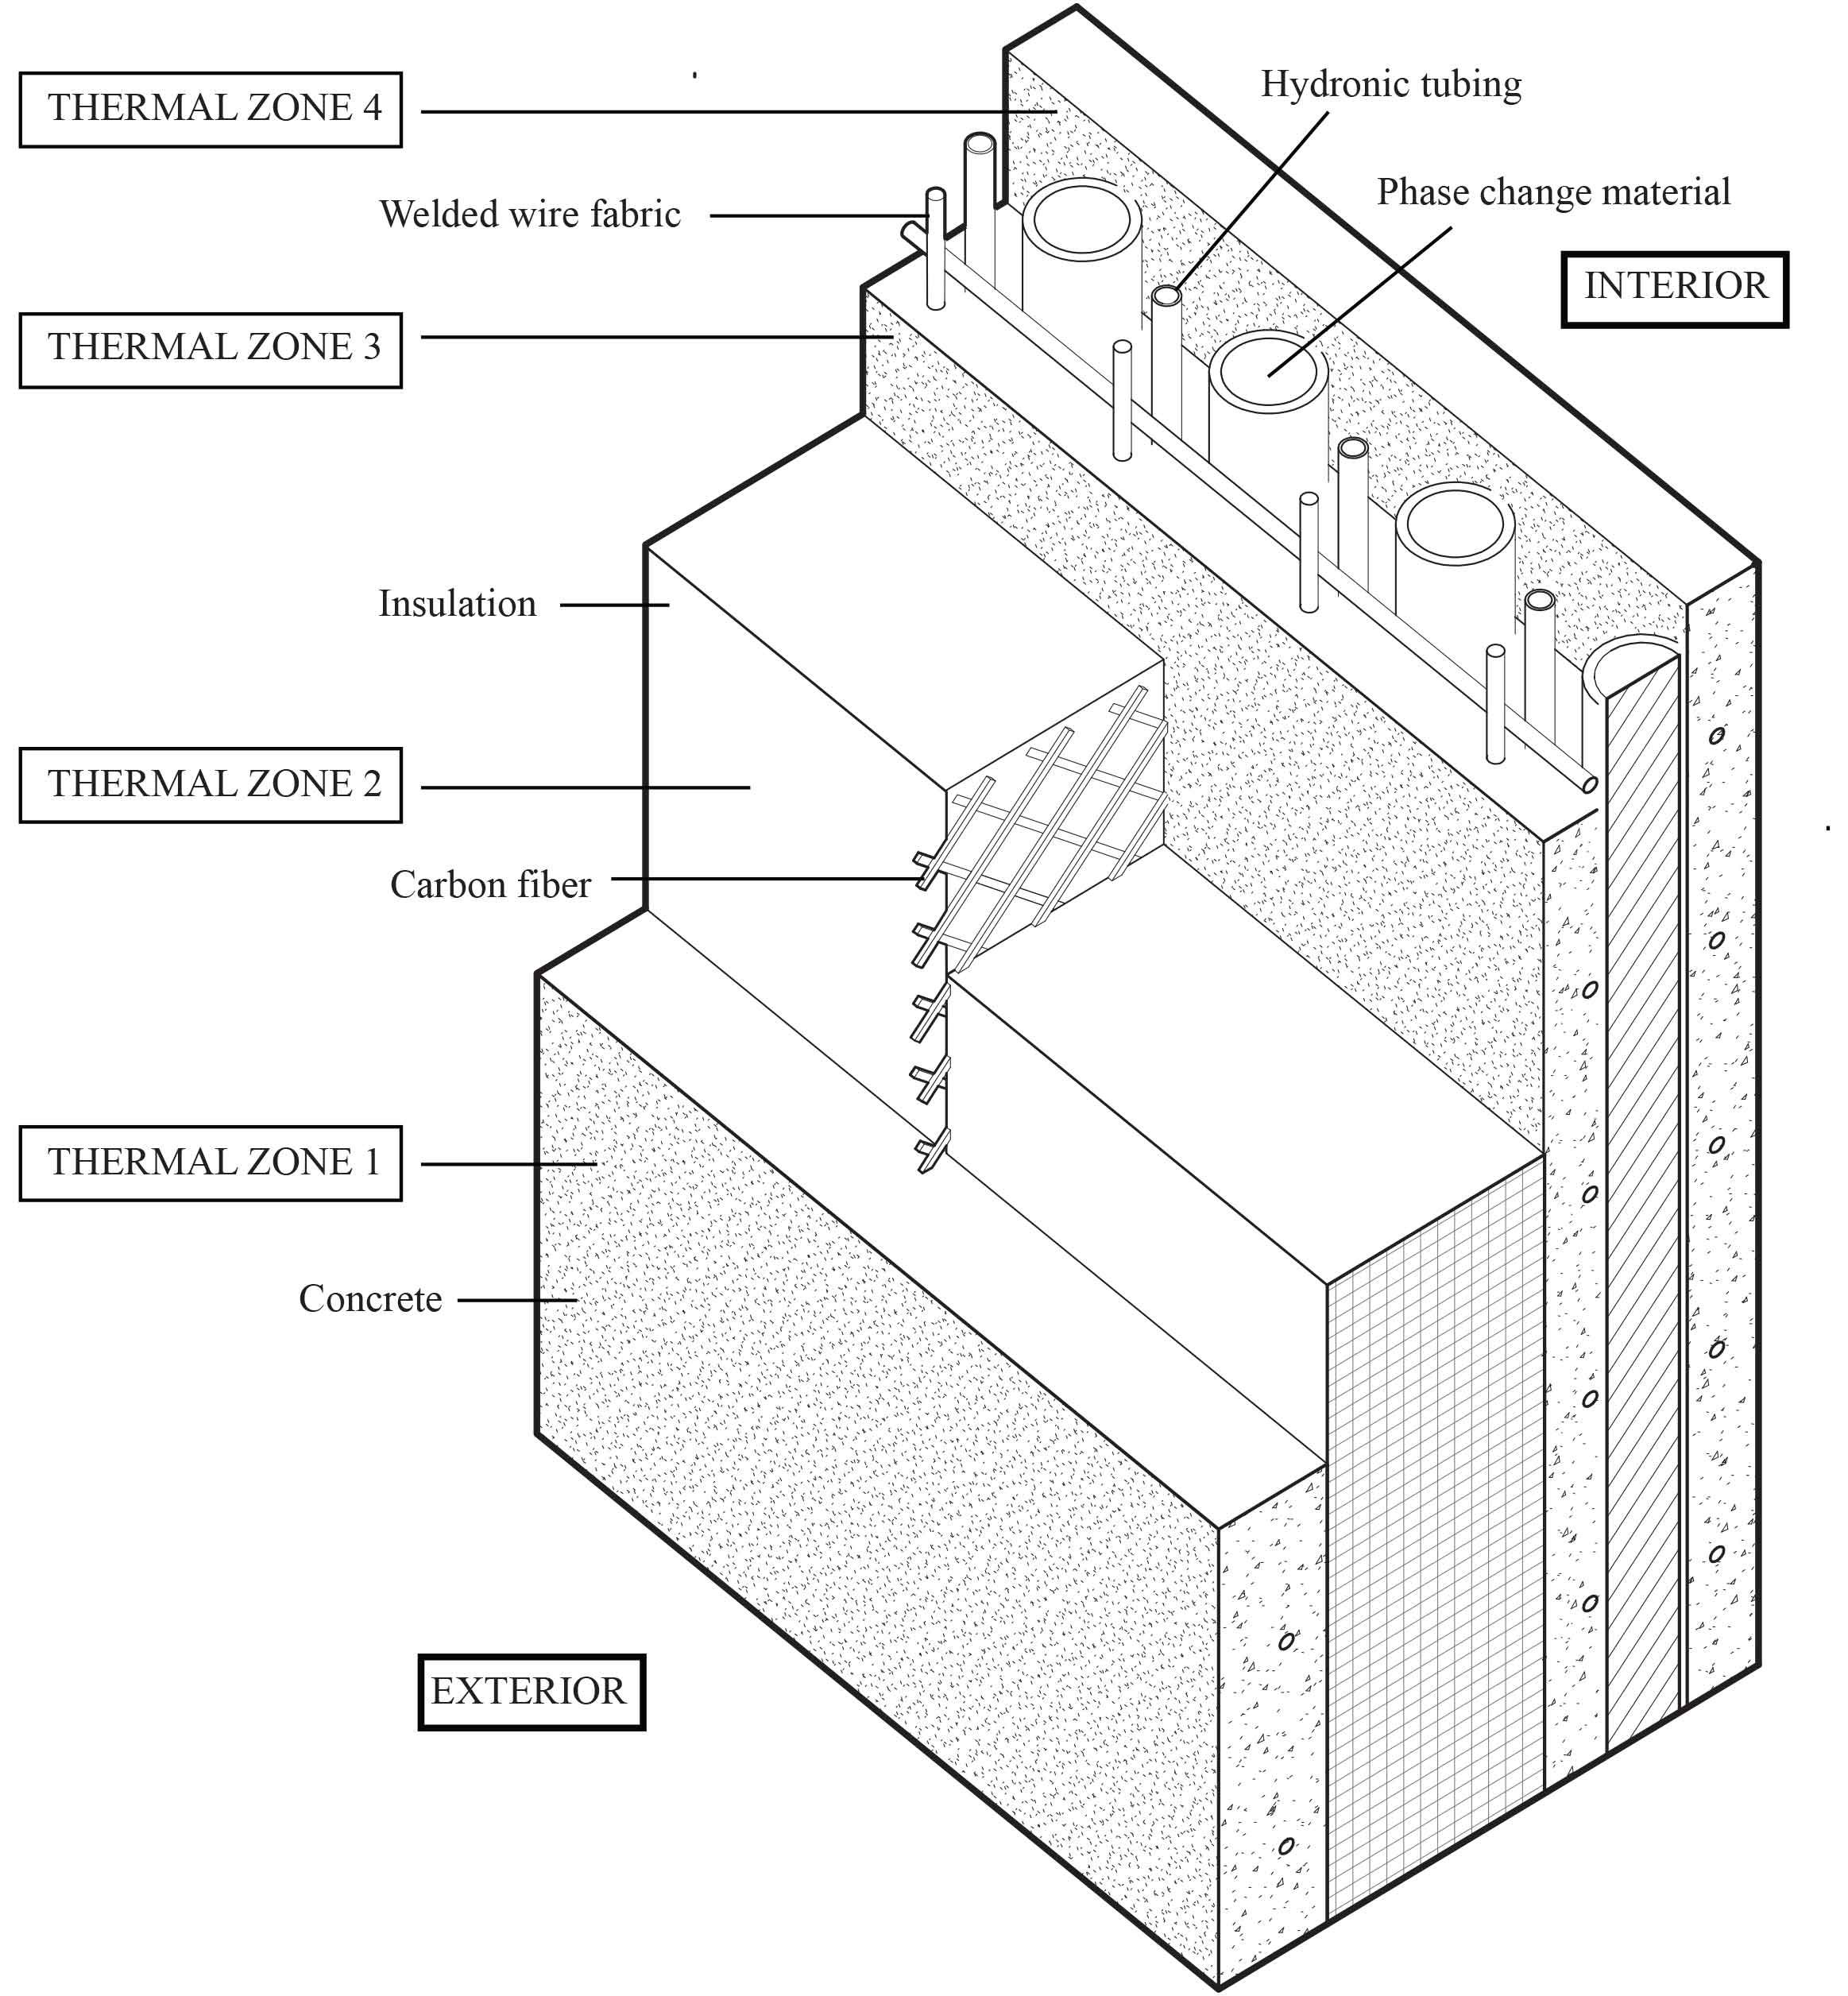 Clarke Snell Building Envelope Research Design And Publications Fixing Concrete The Passichanical Wall System Concrete Insulation Wall Systems Concrete